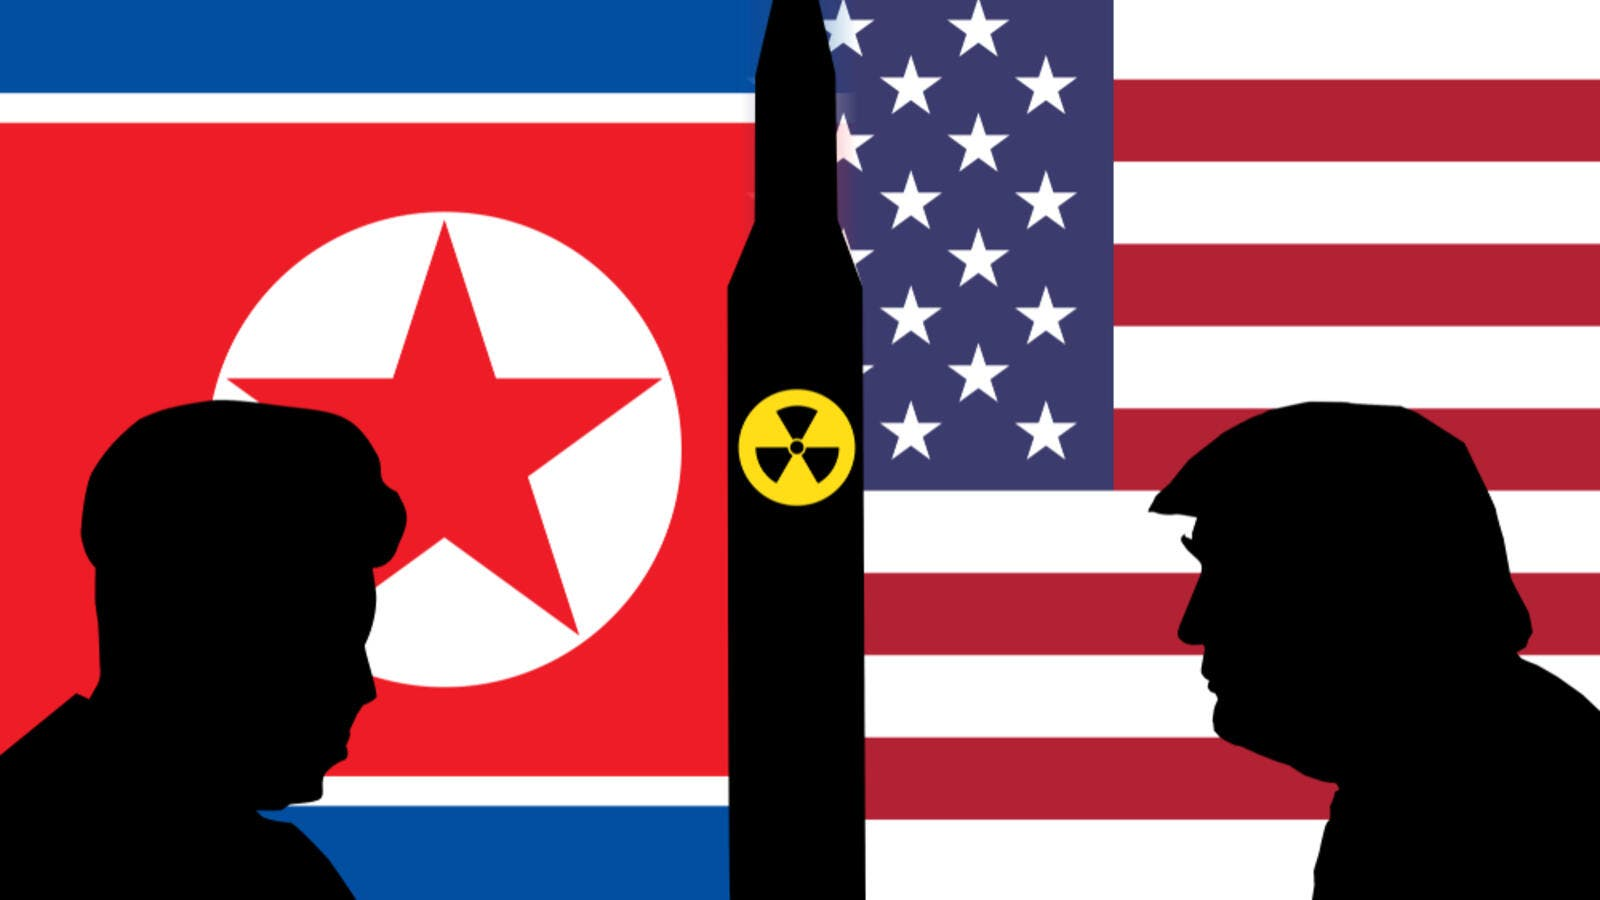 An illustration showing silhouettes of US President Donald Trump and North Korean Supreme leader Kim Jong Un. (Shutterstock/ File Photo)